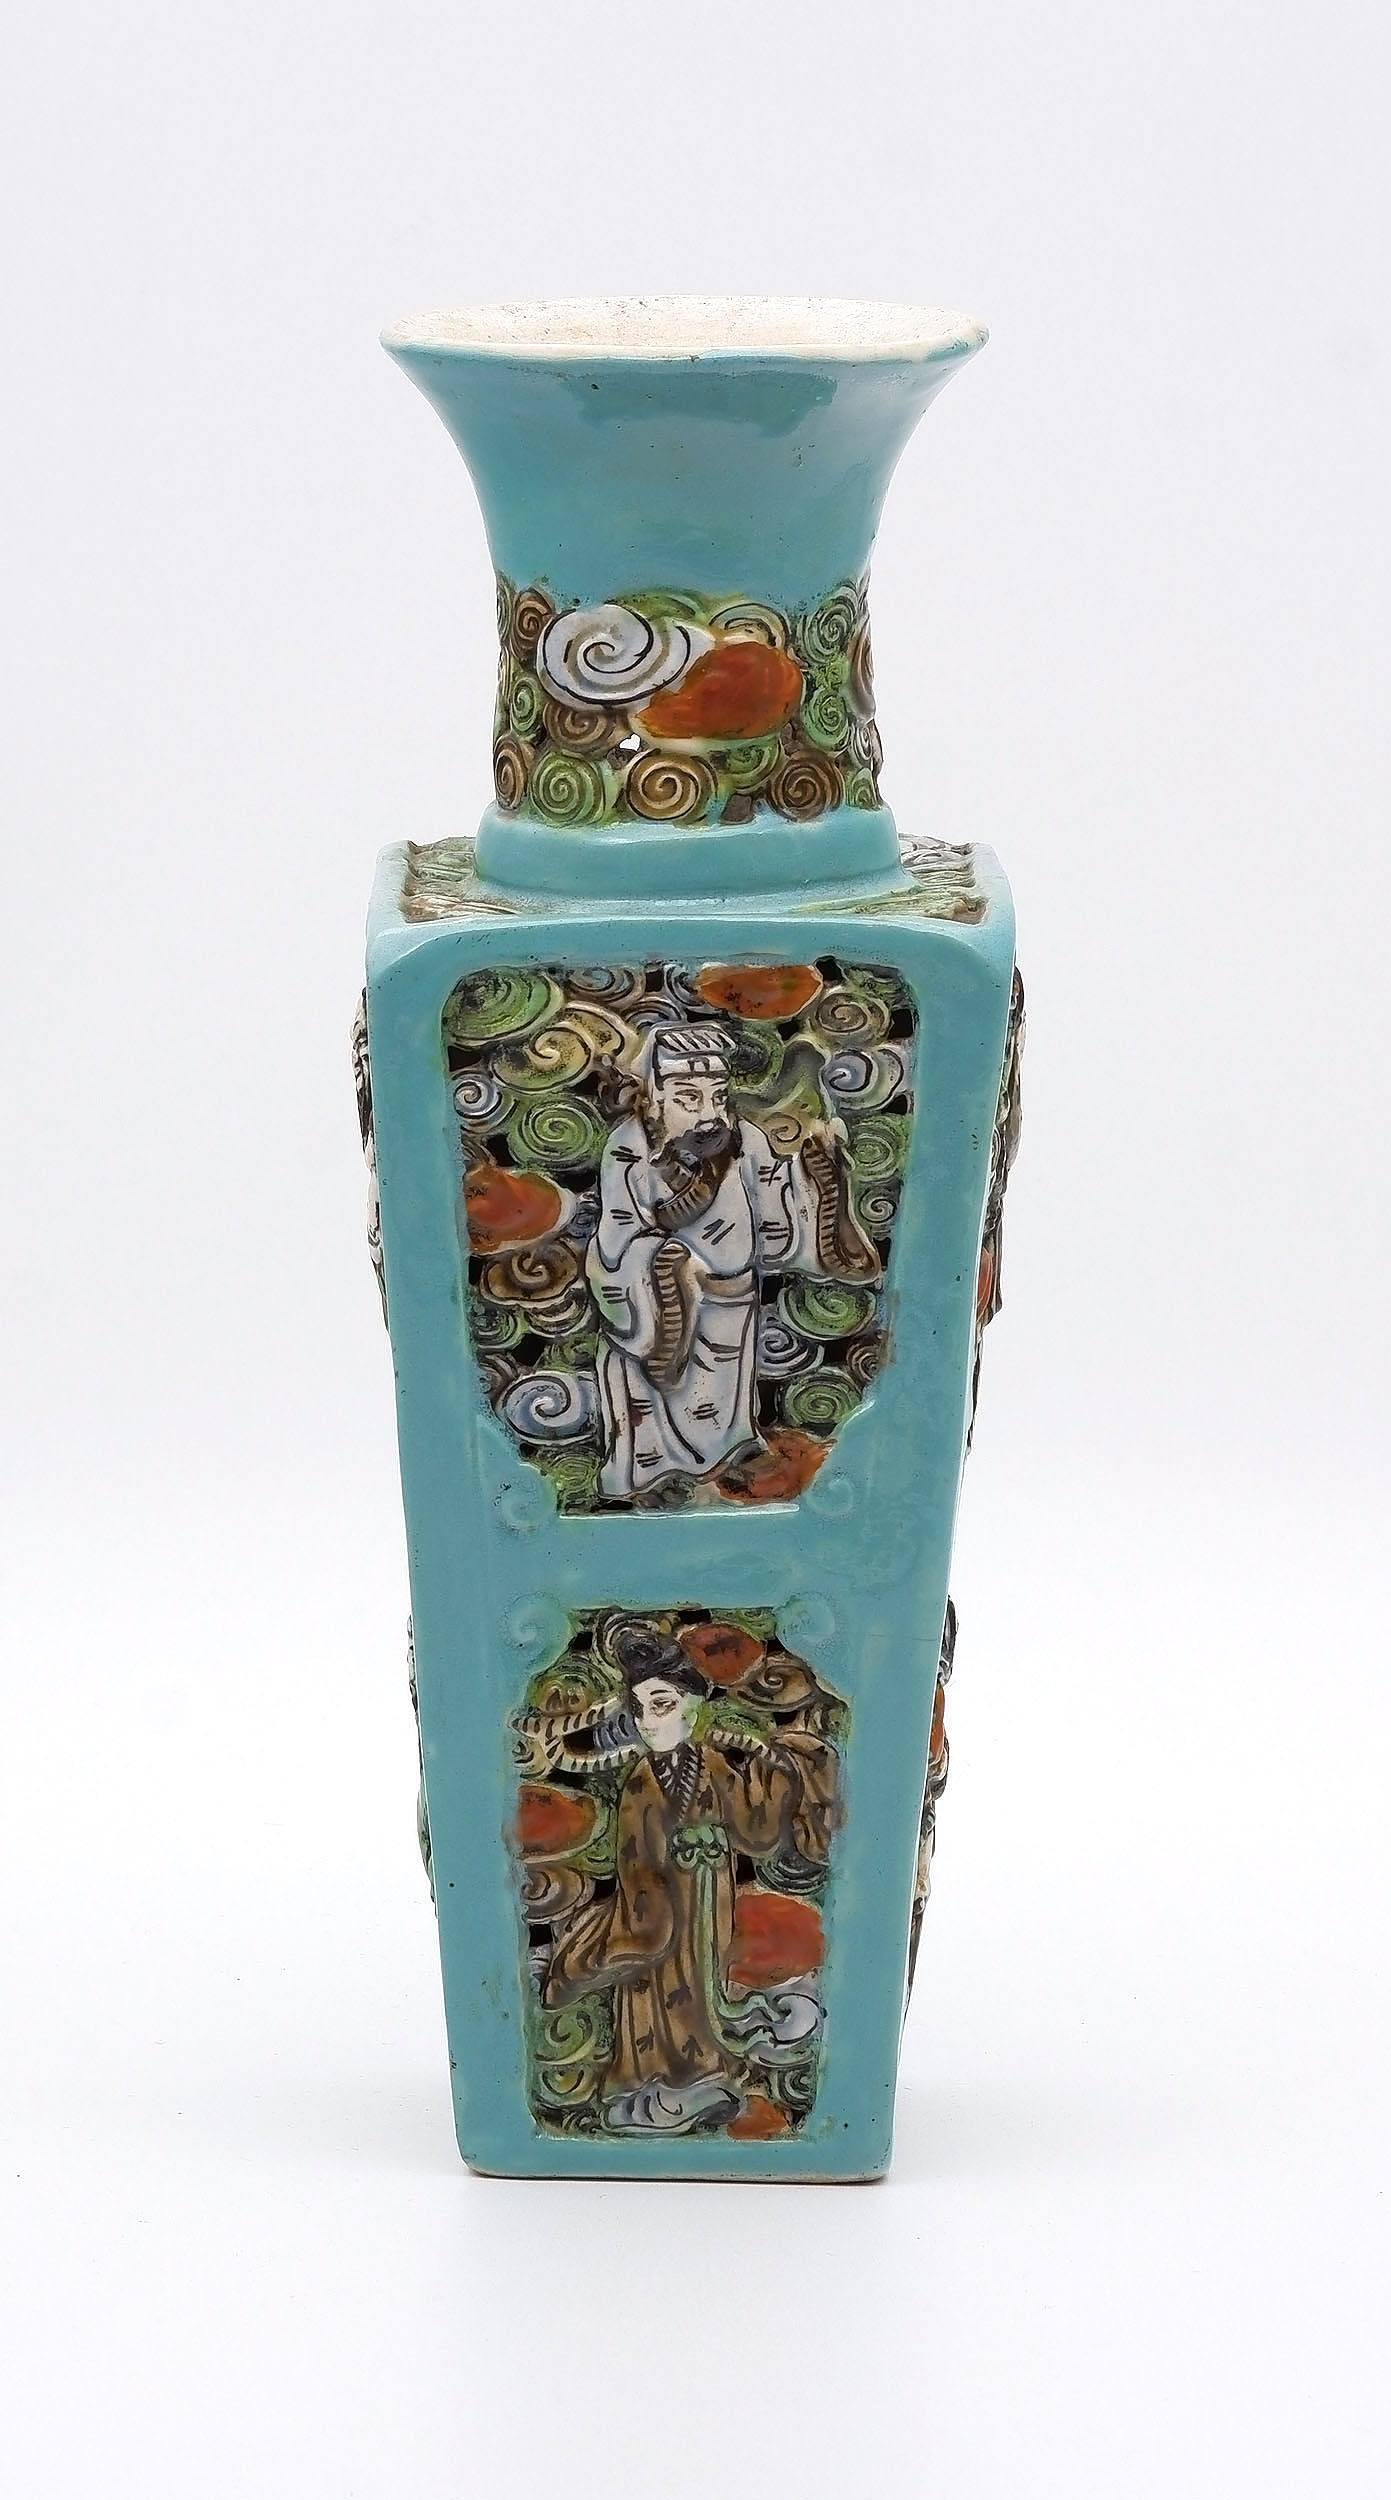 'Chinese Turquoise Ground Square Vase with Moulded and Reticulated Decoration of Sages, 19th Century'